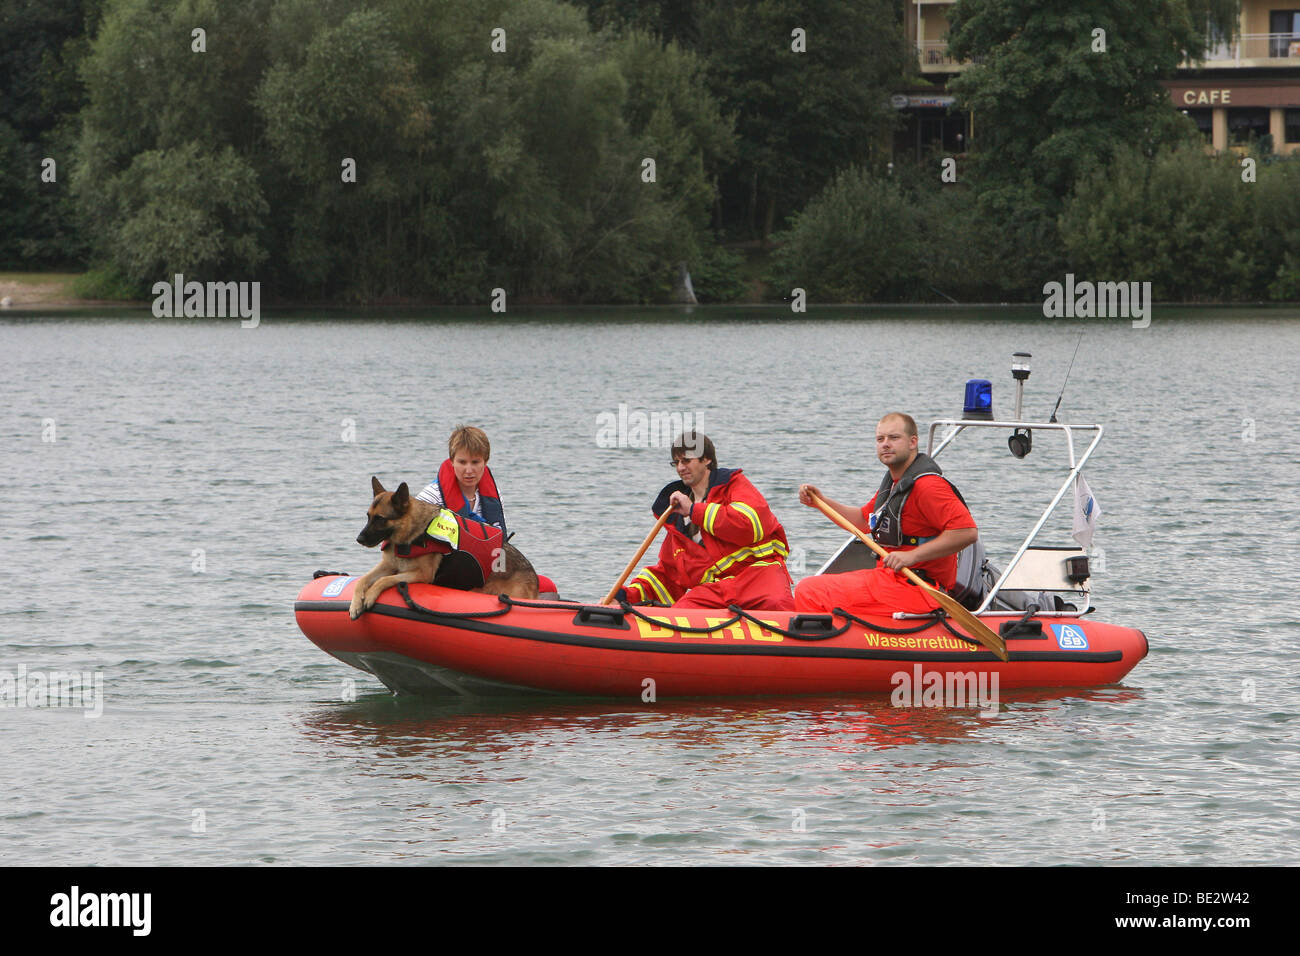 Rescue dog sniffing out a victim, the rescue brigade in Mannheim on Wiesensee lake, Hemsbach, Hesse, Germany, Europe - Stock Image